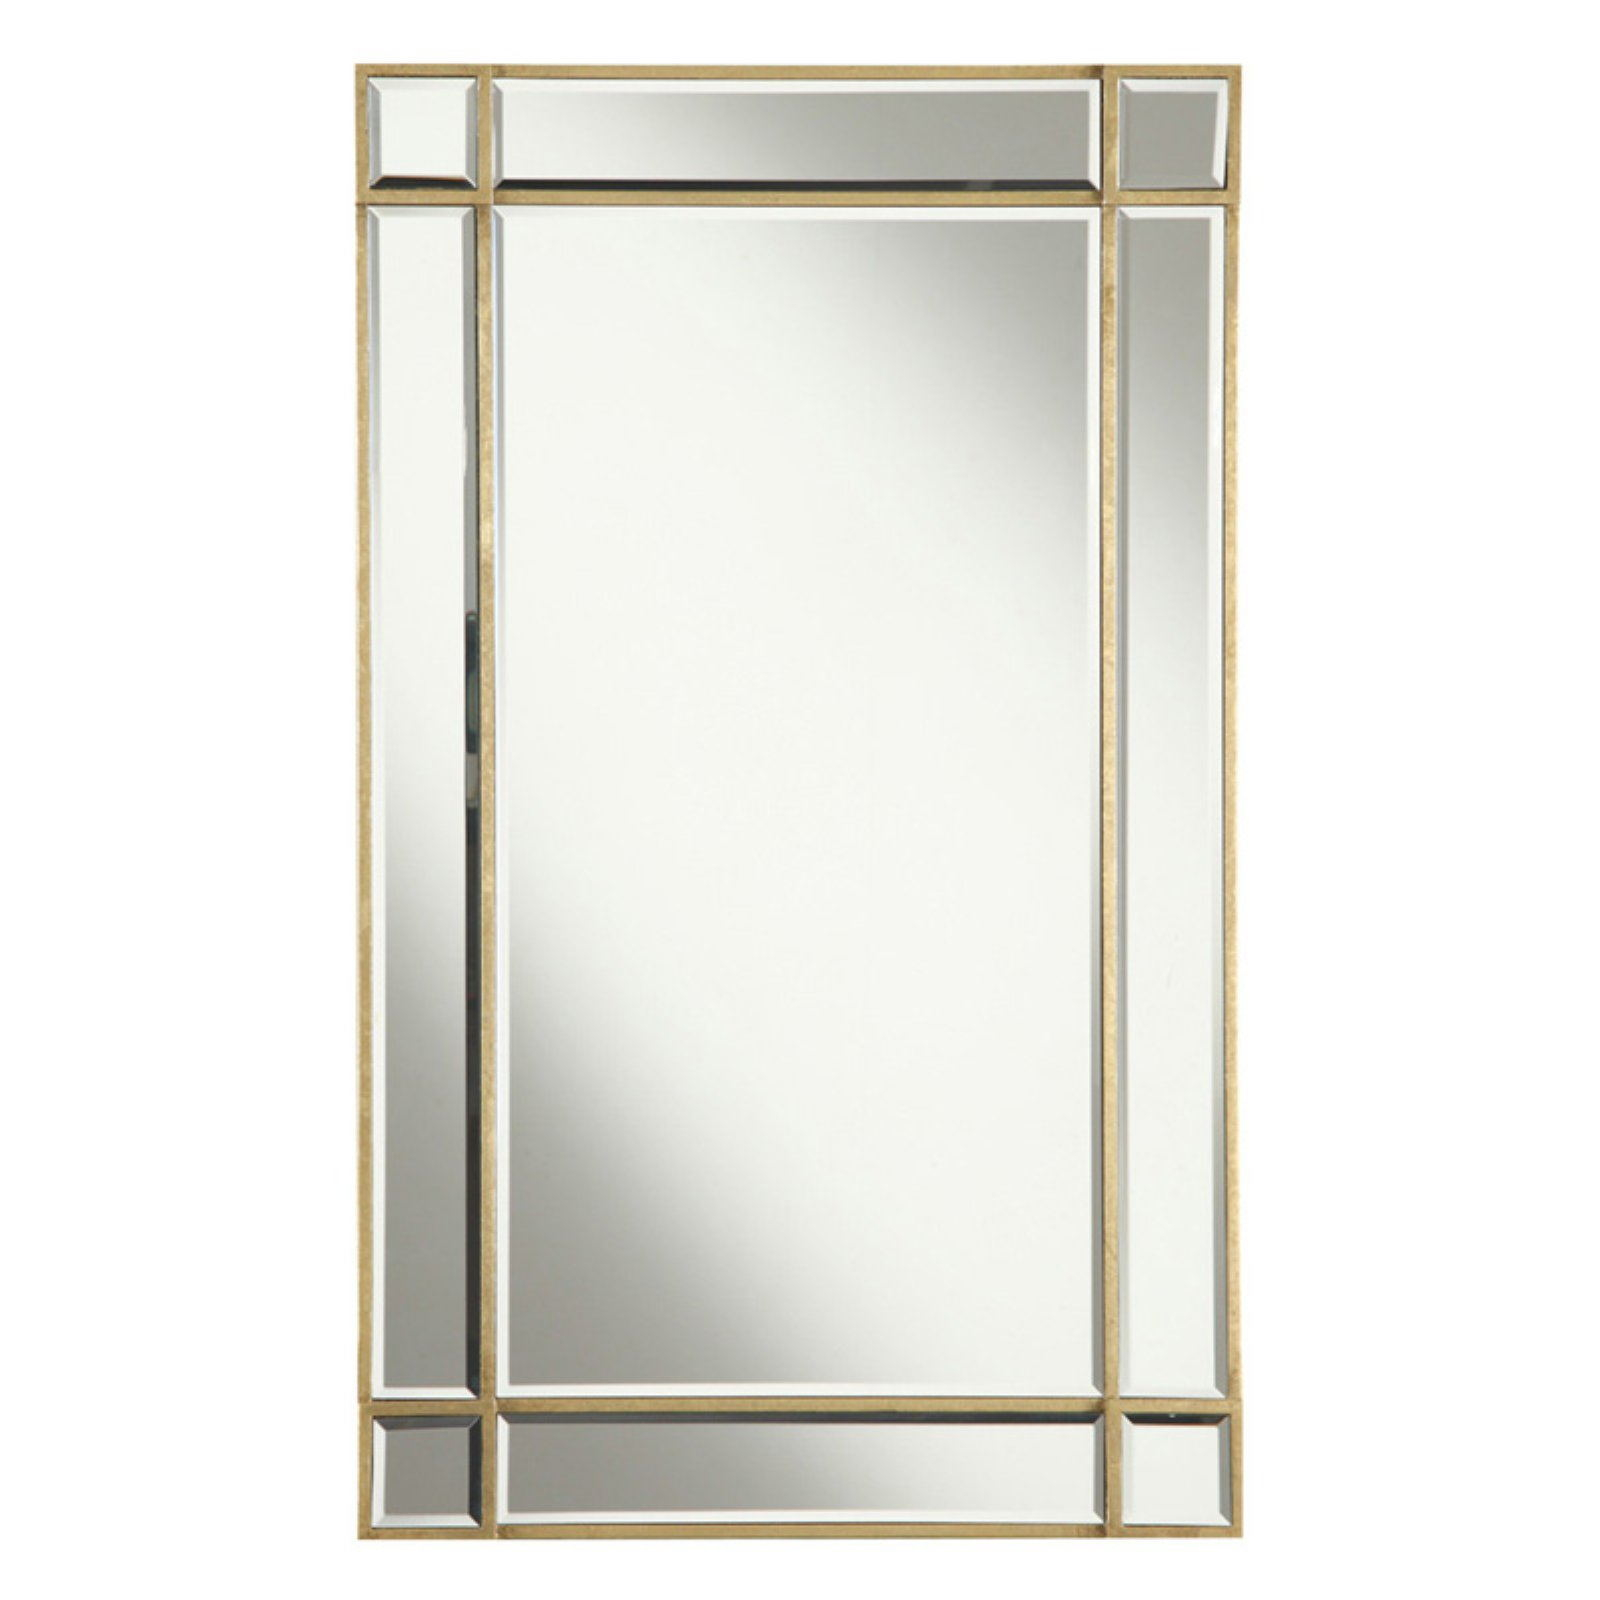 Florentine Rectangular Wall Mirror